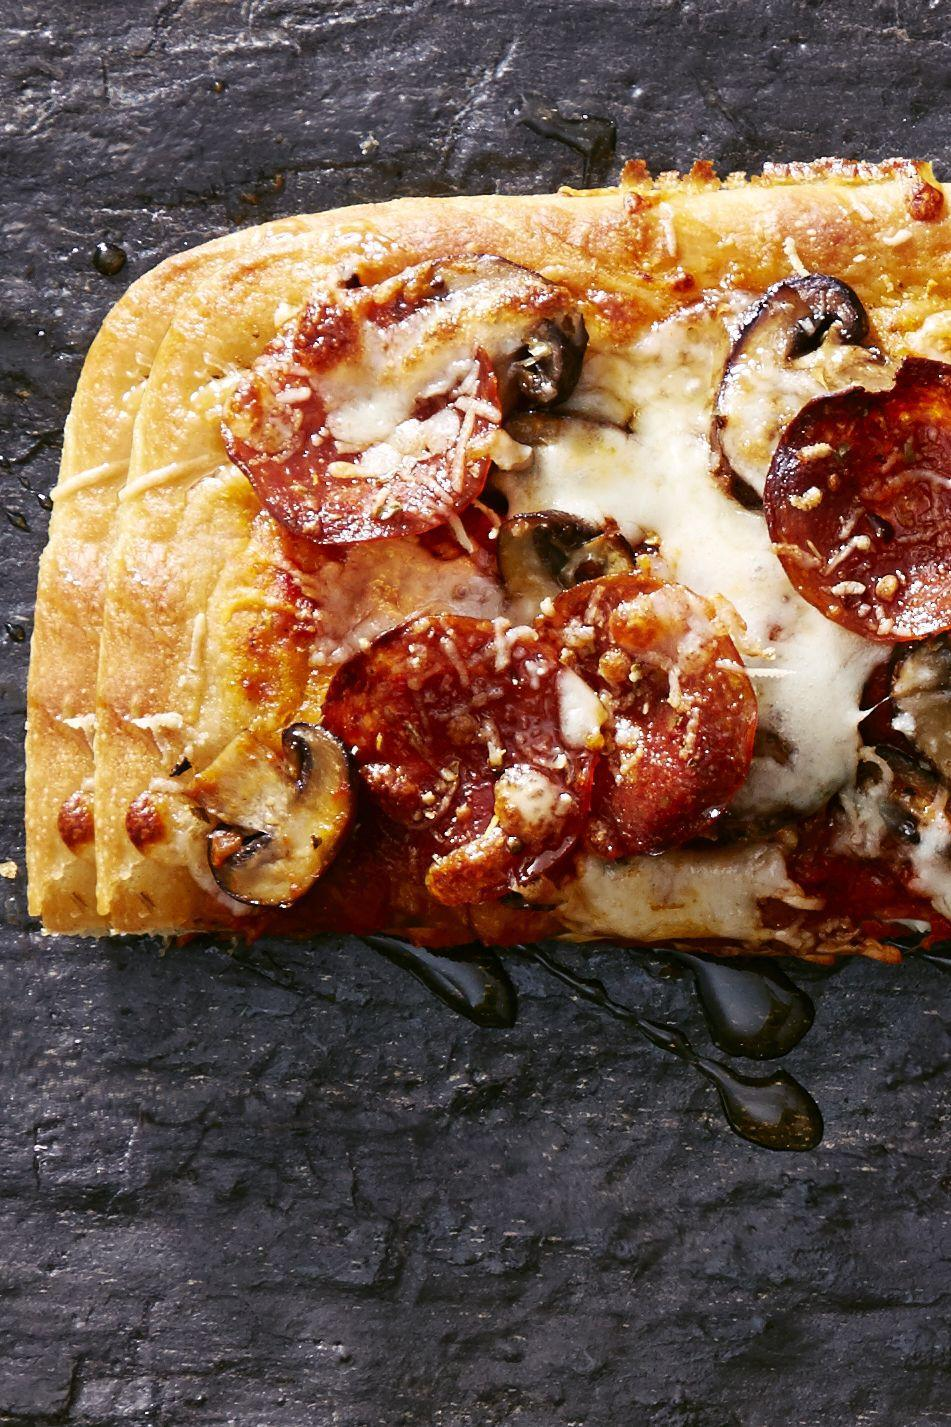 "<p>Chili flakes bring the heat, but a slight drizzle of honey brings a subtle sweetness that takes this pie up a notch.</p><p><a href=""https://www.goodhousekeeping.com/food-recipes/party-ideas/a36233/sweet-and-spicy-pepperoni-mushroom-pizza/"" rel=""nofollow noopener"" target=""_blank"" data-ylk=""slk:Get the recipe for Sweet and Spicy Pepperoni-Mushroom Pizza »"" class=""link rapid-noclick-resp""><em>Get the recipe for Sweet and Spicy Pepperoni-Mushroom Pizza »</em></a></p>"